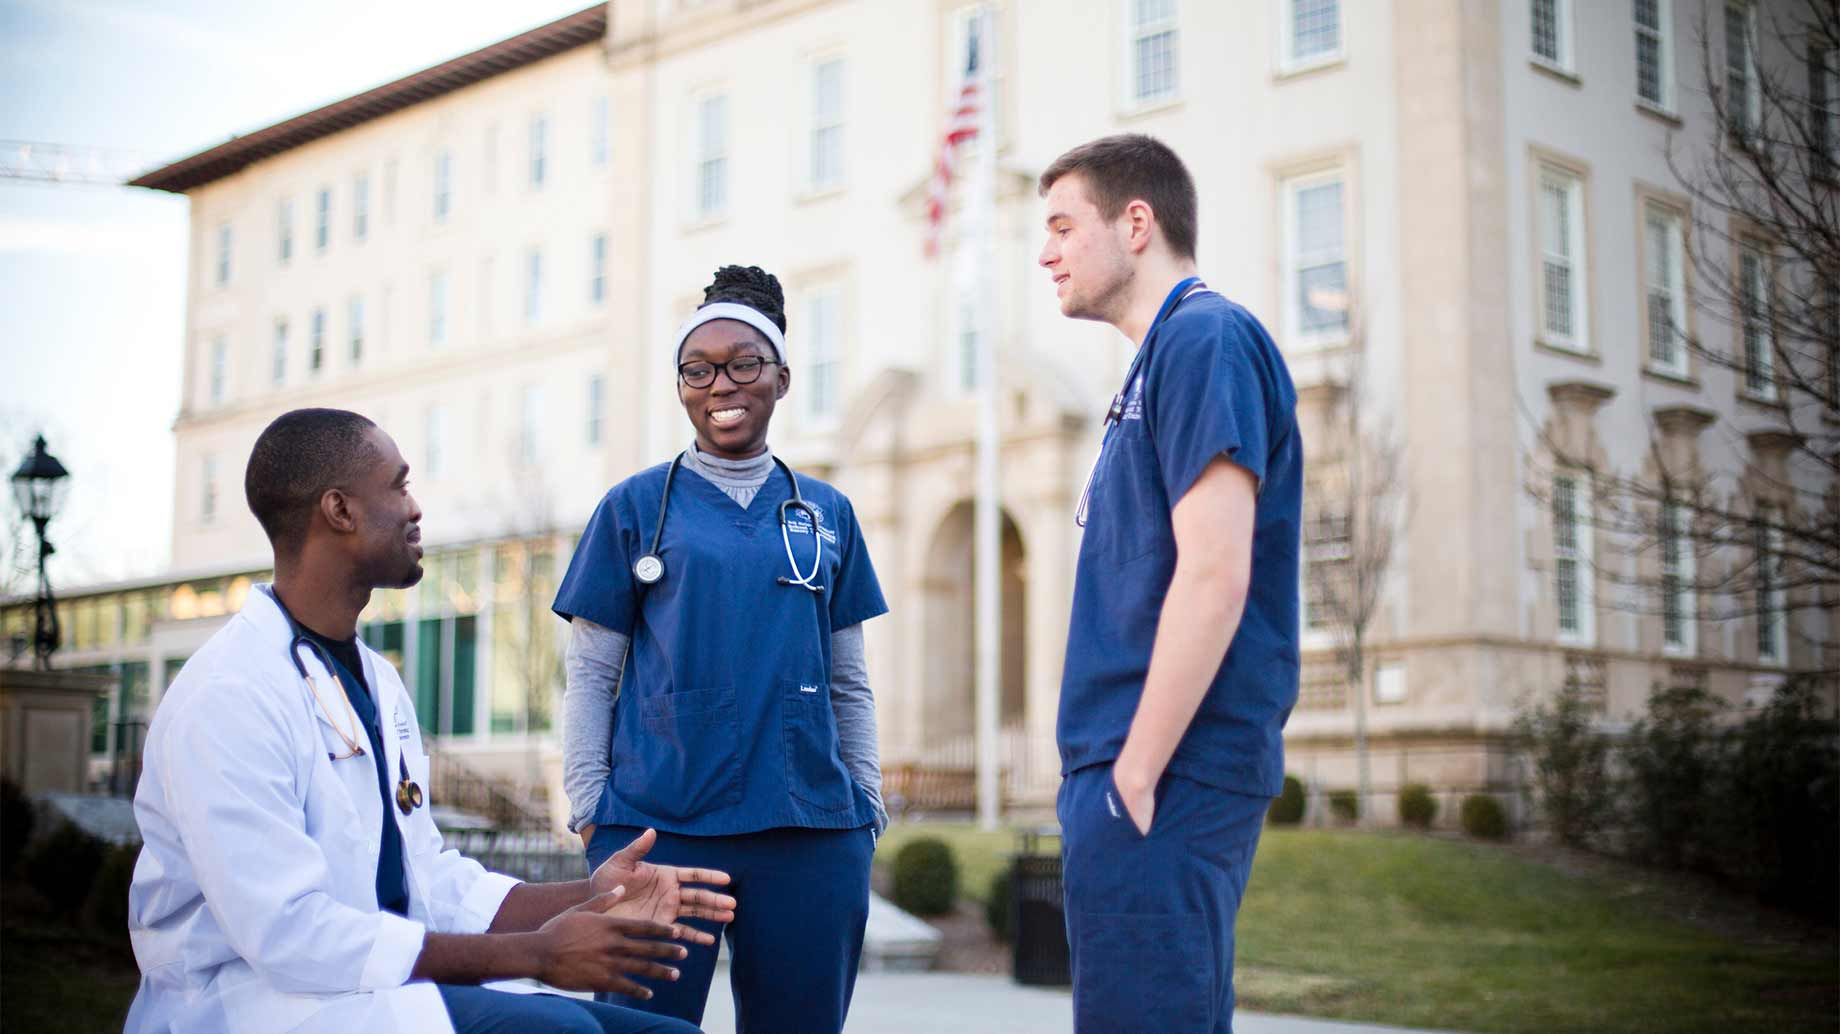 two nursing students and a medical student chatting in front of a medical school building